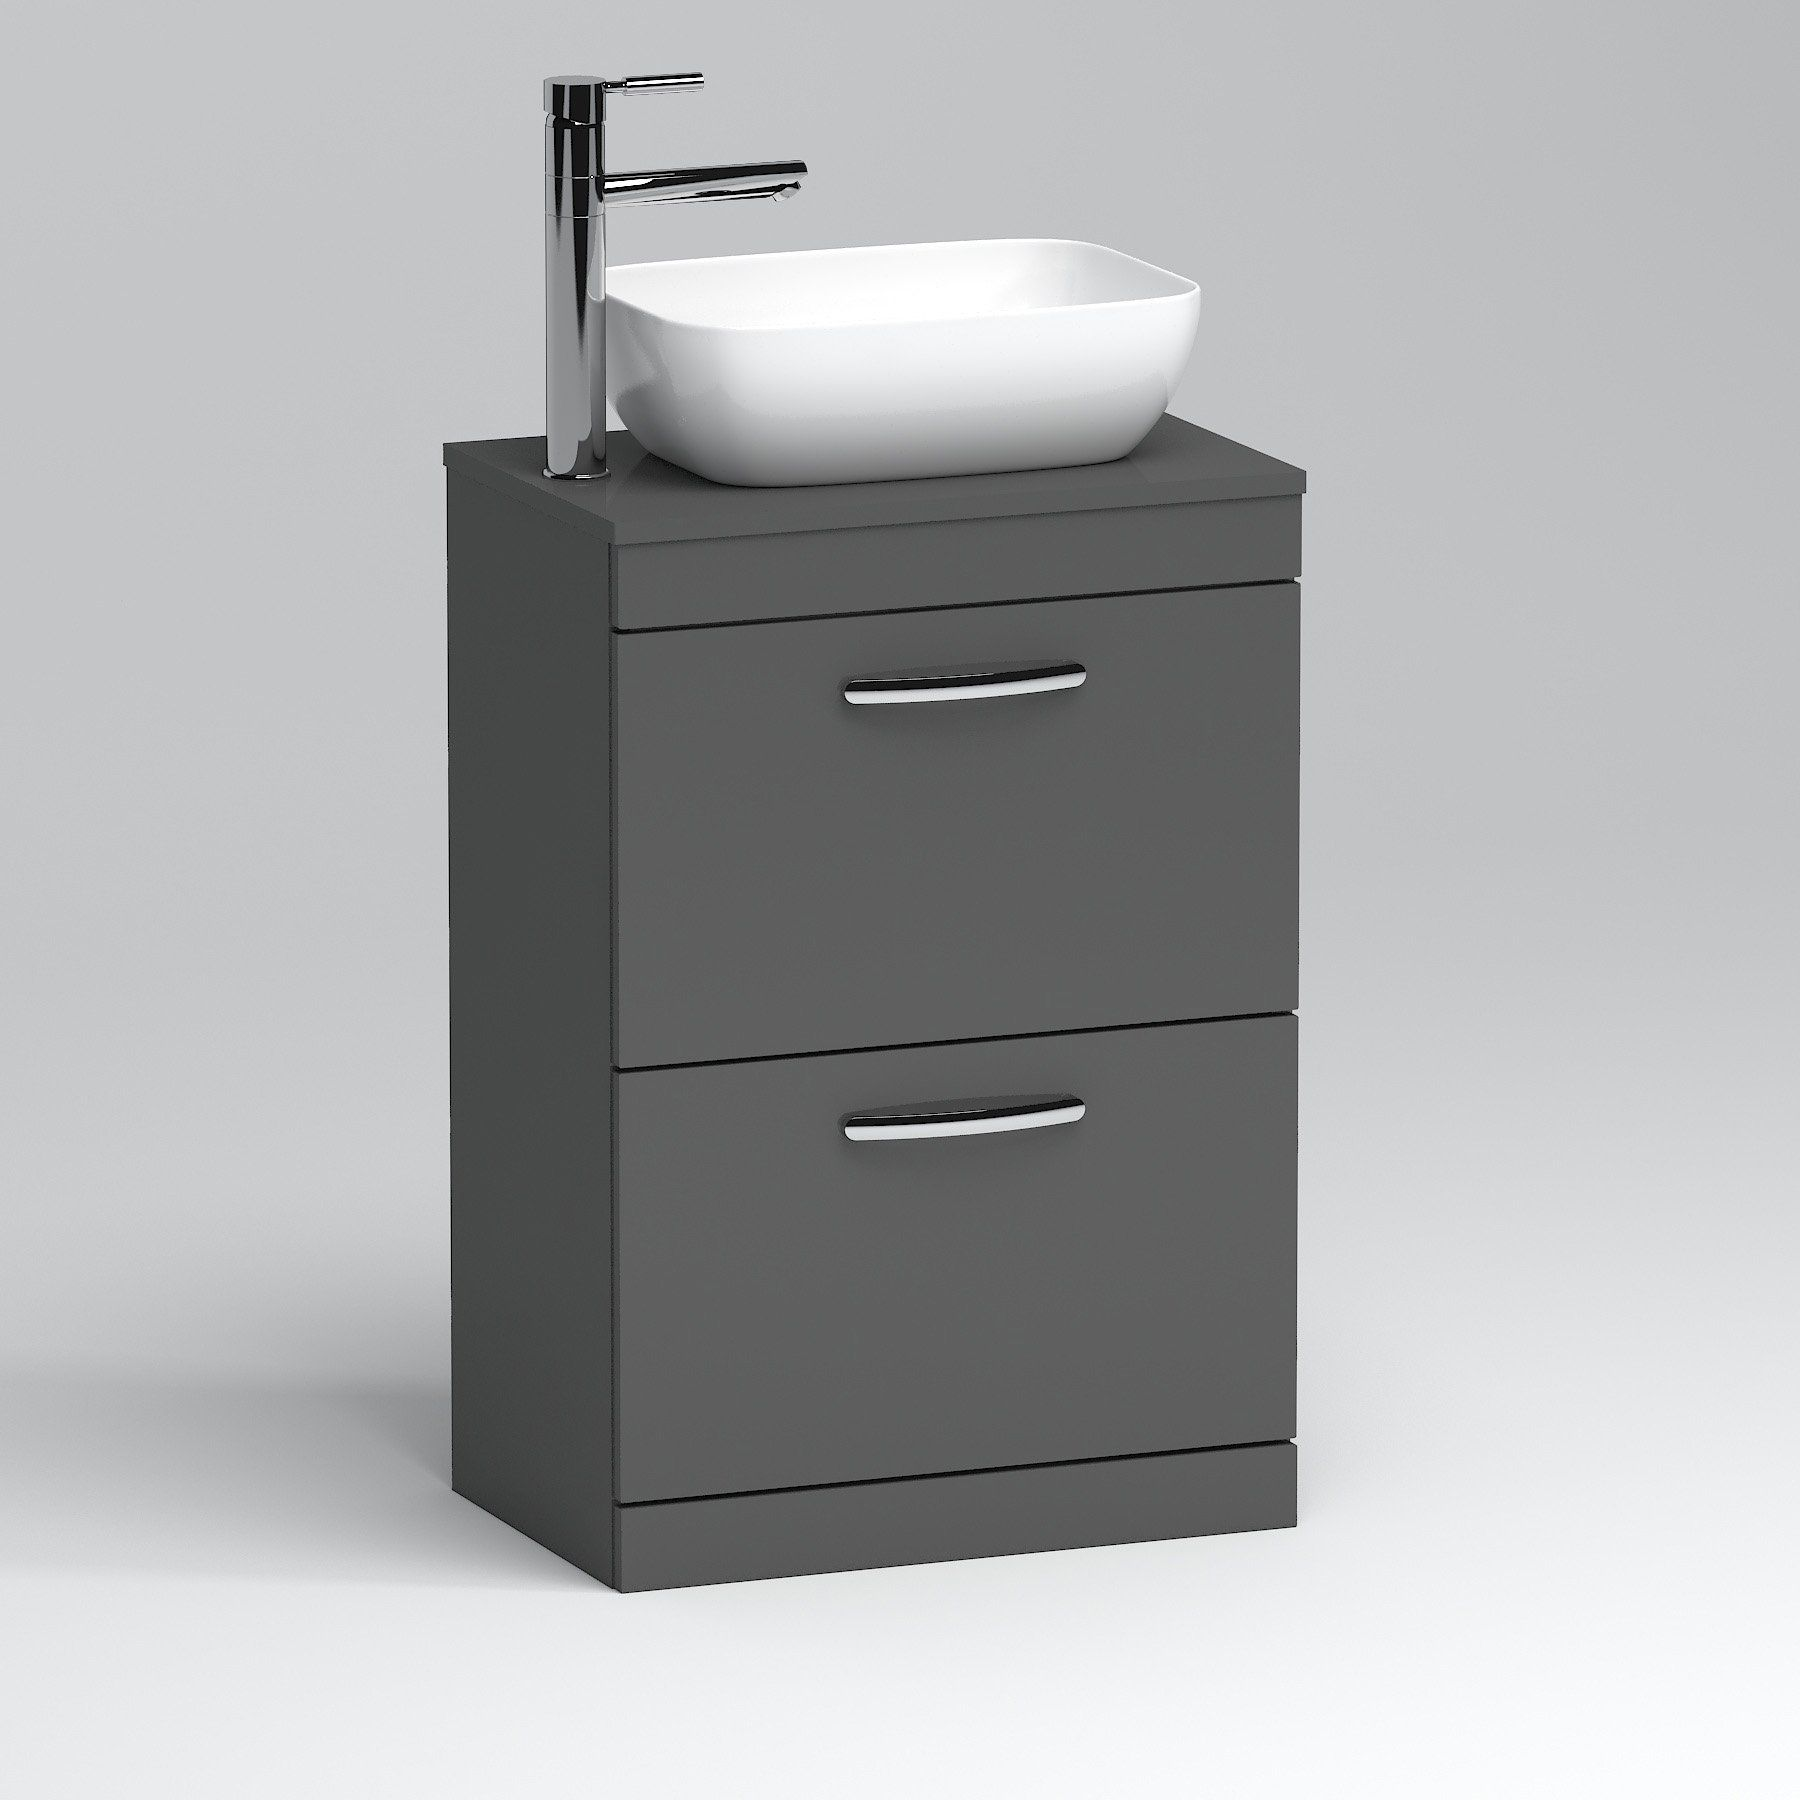 600mm Floor Standing Vanity Unit 2 Drawer Indigo Grey Gloss